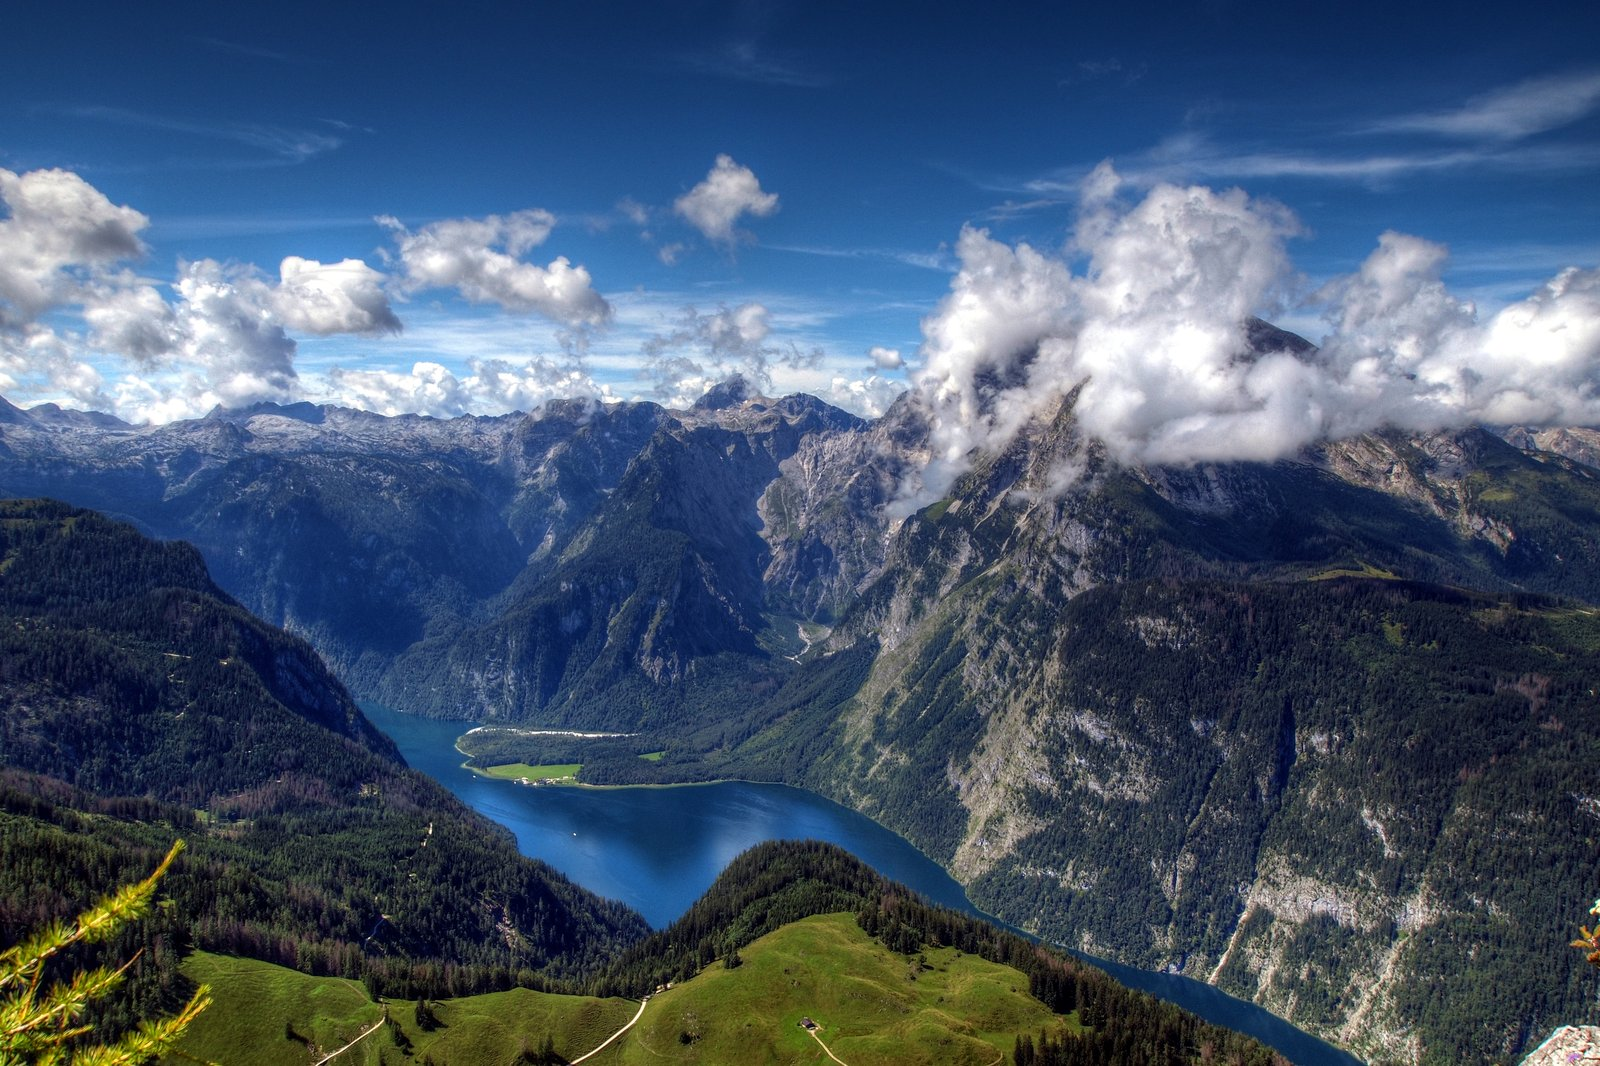 summer_in_the_alps_by_burtn-d45nirl